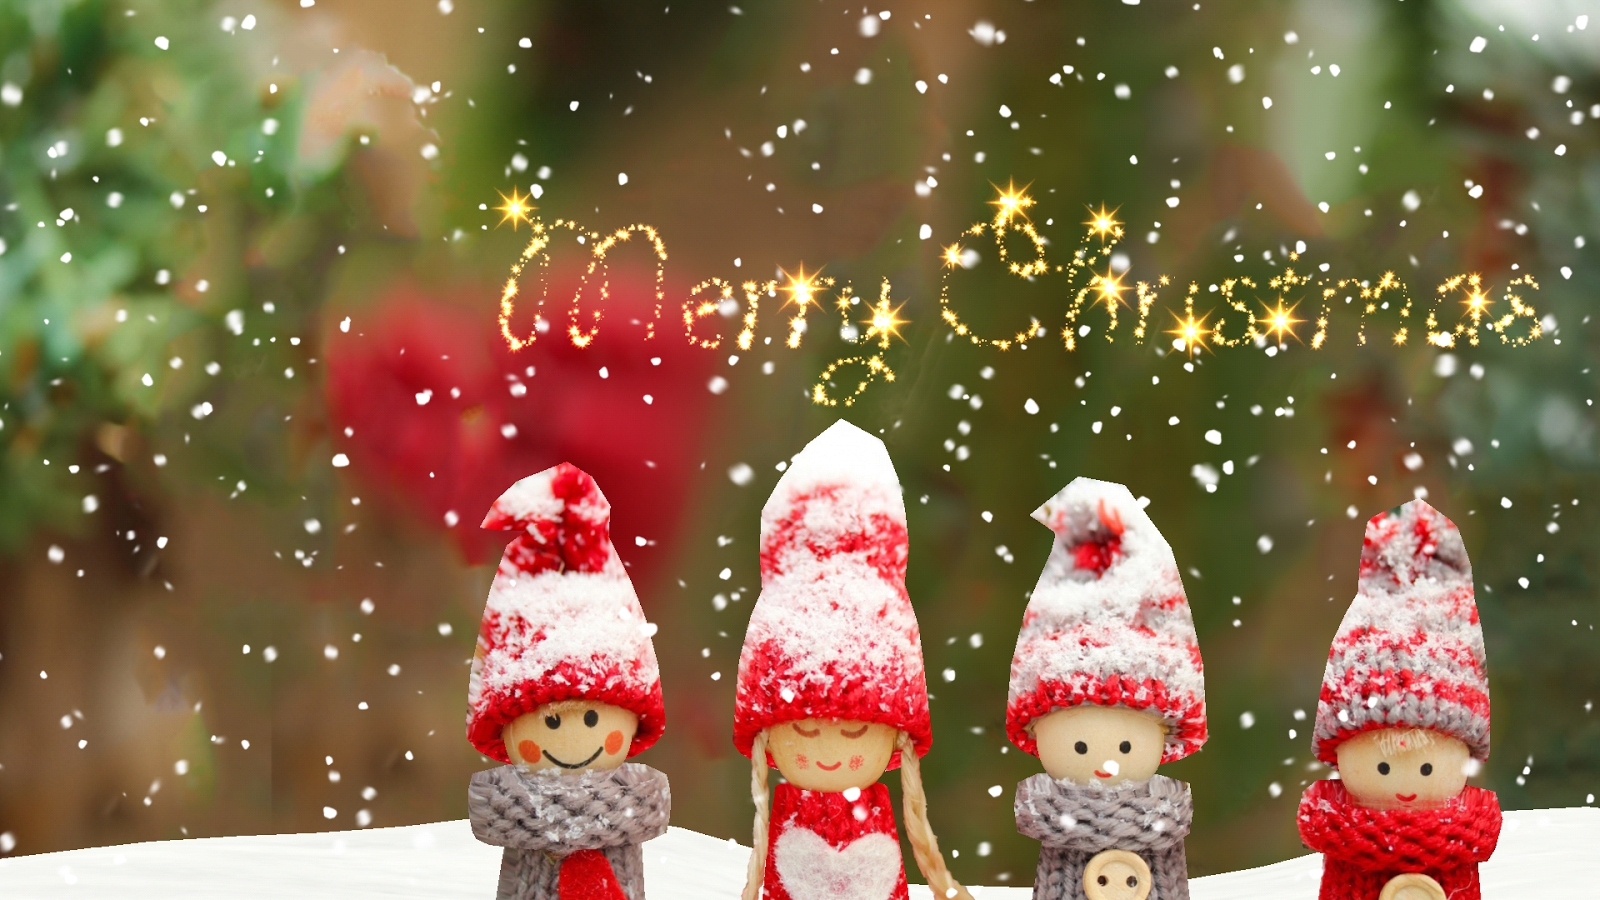 Christmas Dolls Live Wallpaper Android Apps On Google Play